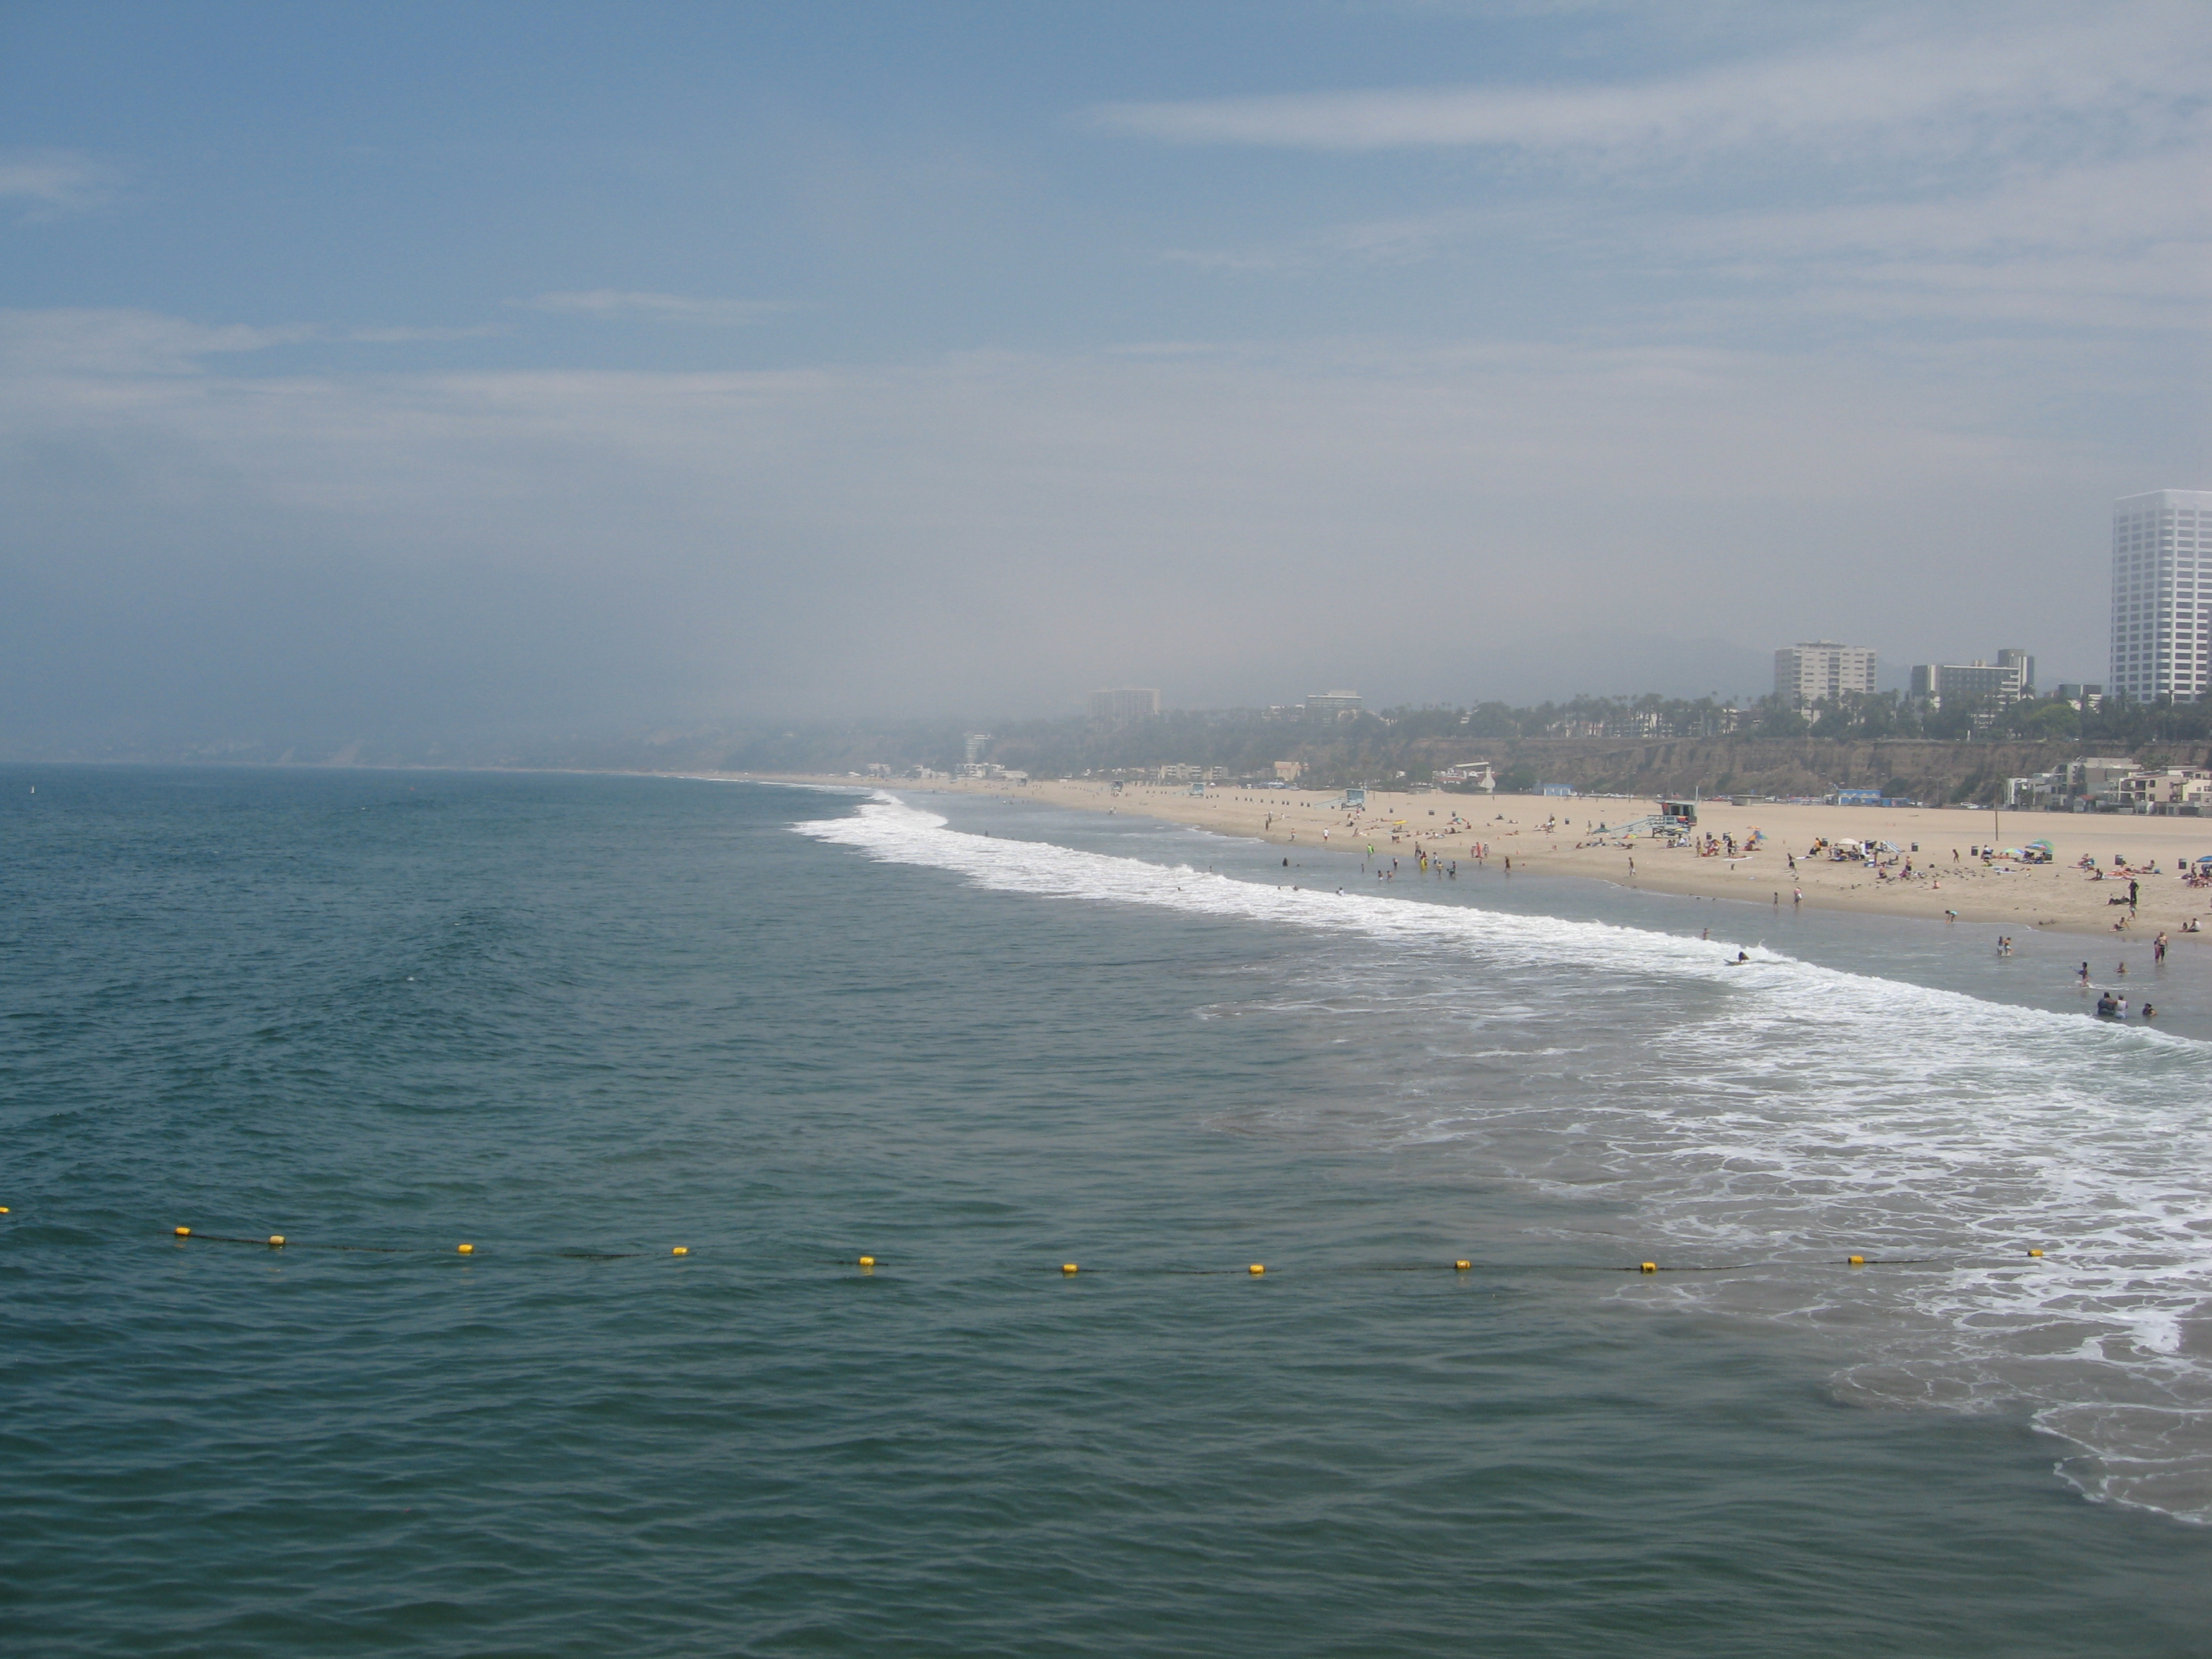 On August 6, Santa Monica beach was temporarily closed due to a mysterious substance, later identified as linoleic acid, washing up on the shore.